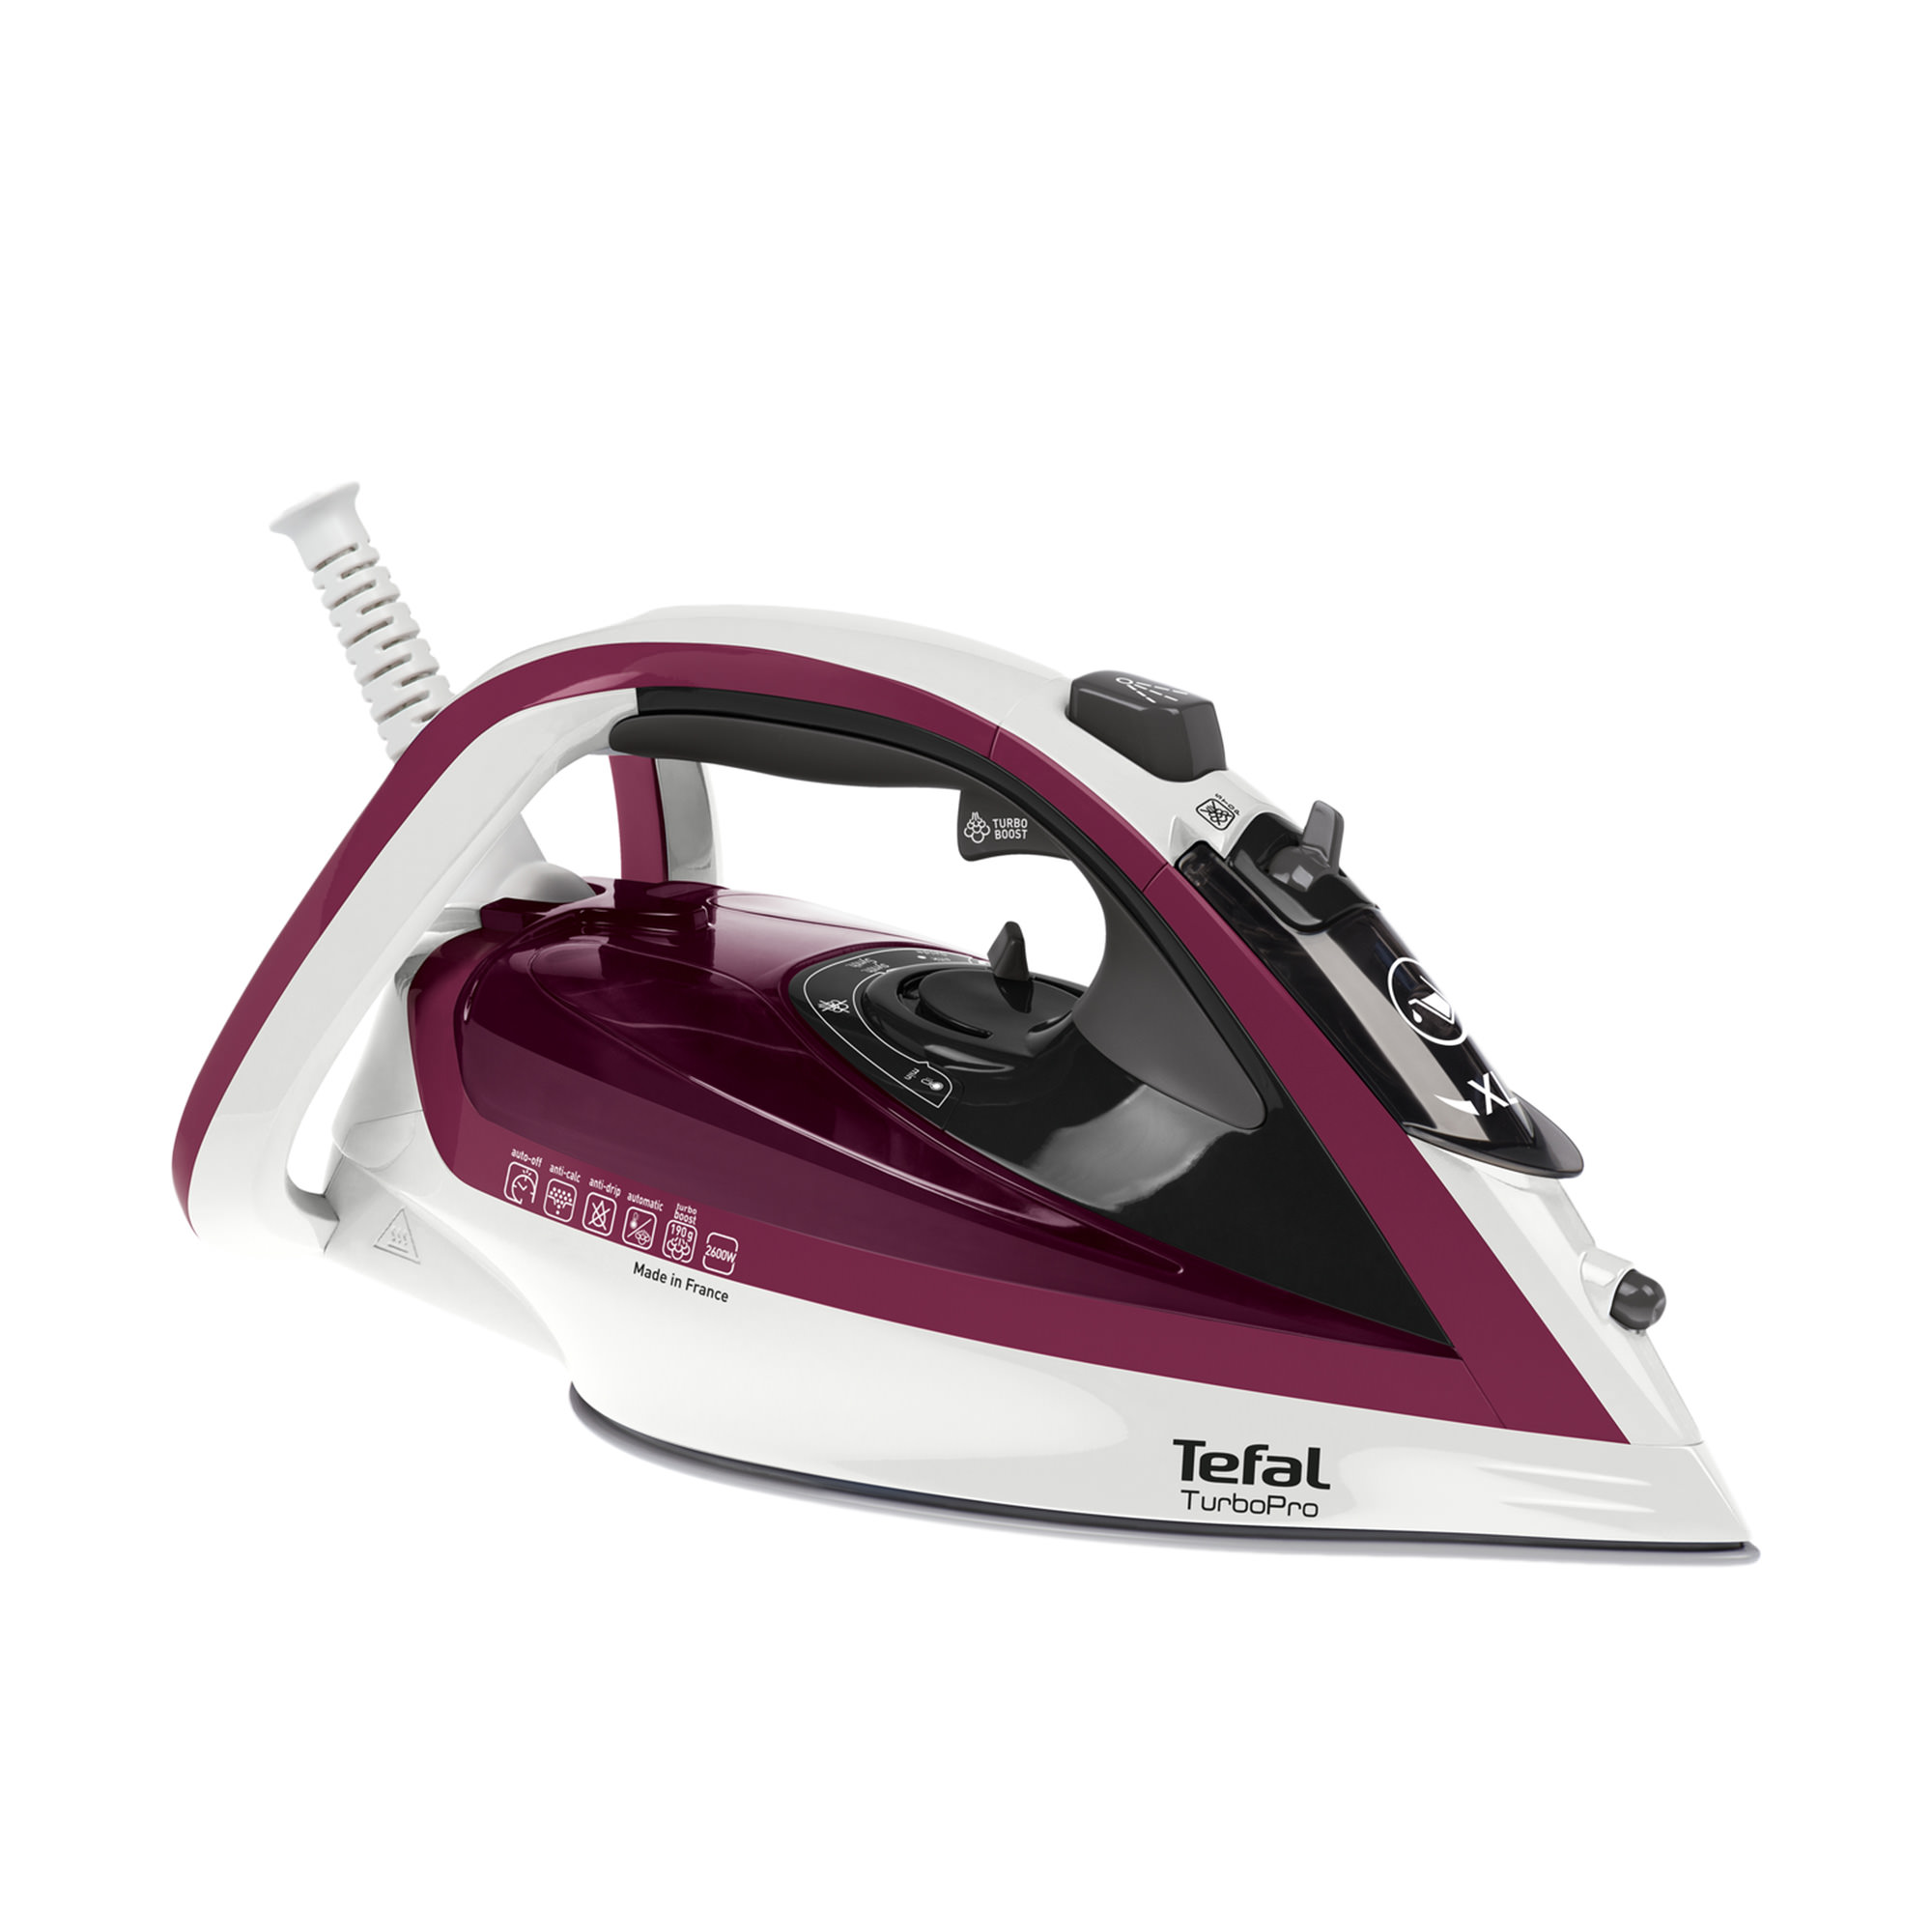 Tefal Turbopro Airglide Steam Iron